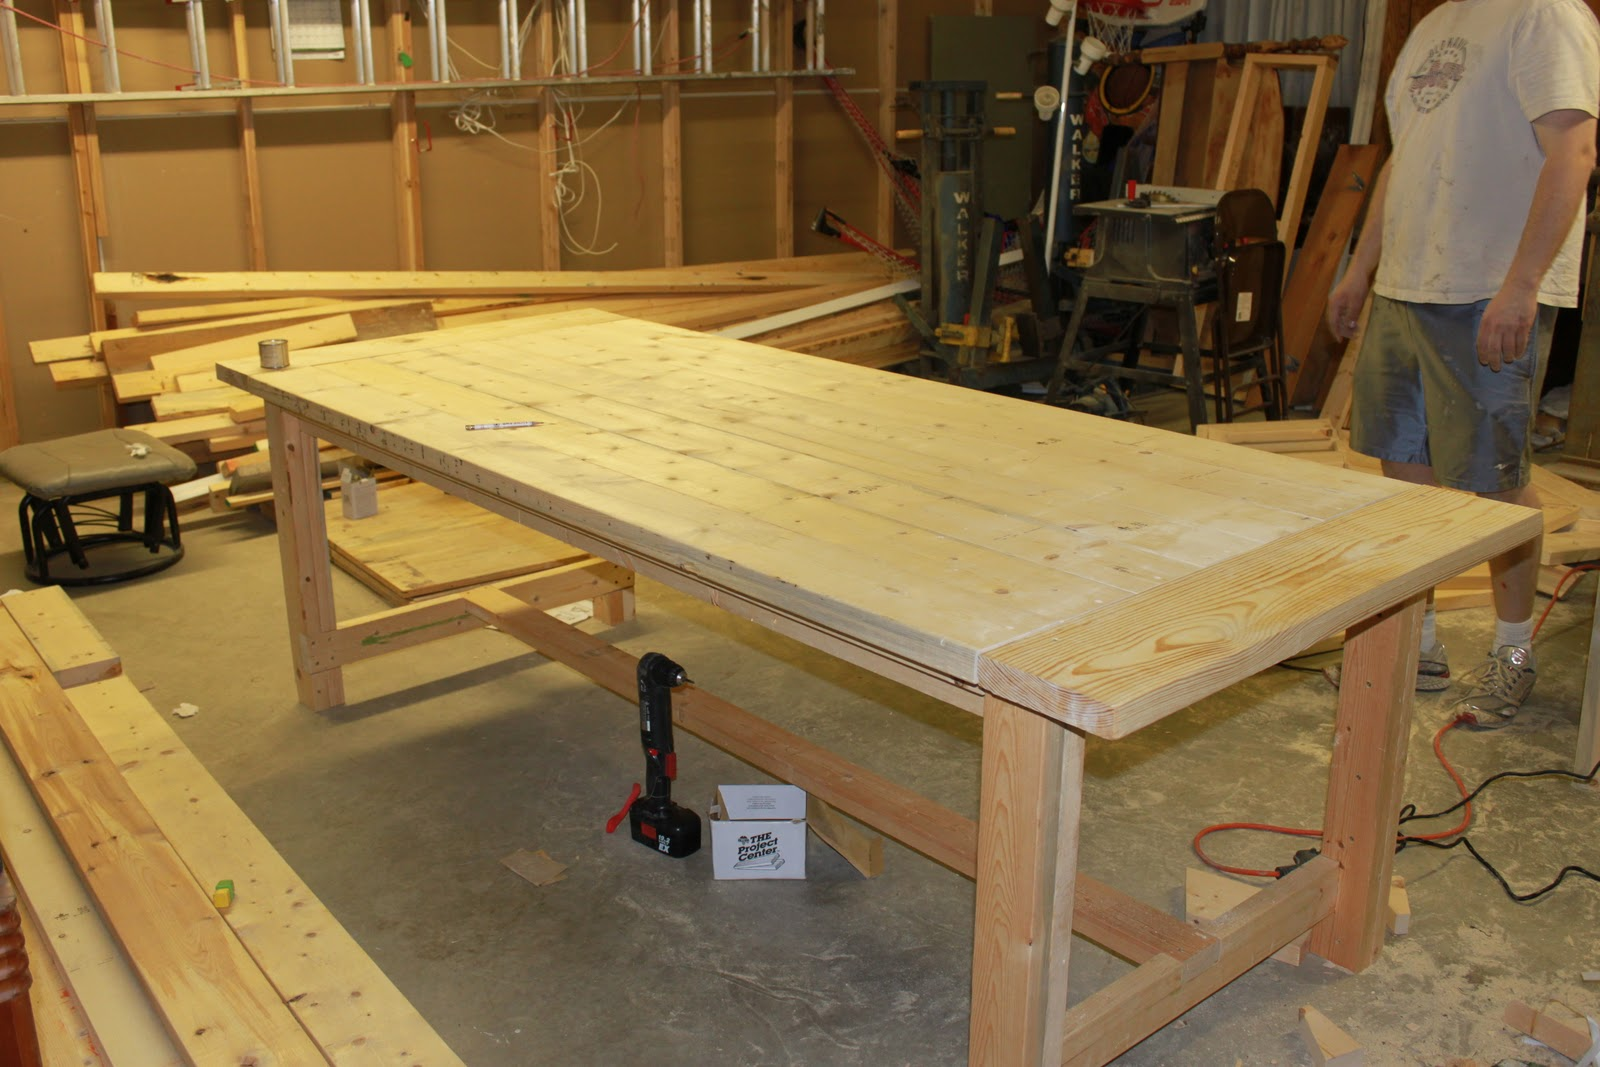 Genial How We Built A DIY Dining Room Table From Free Plans Online. It Was Easy.  You Should Try It!